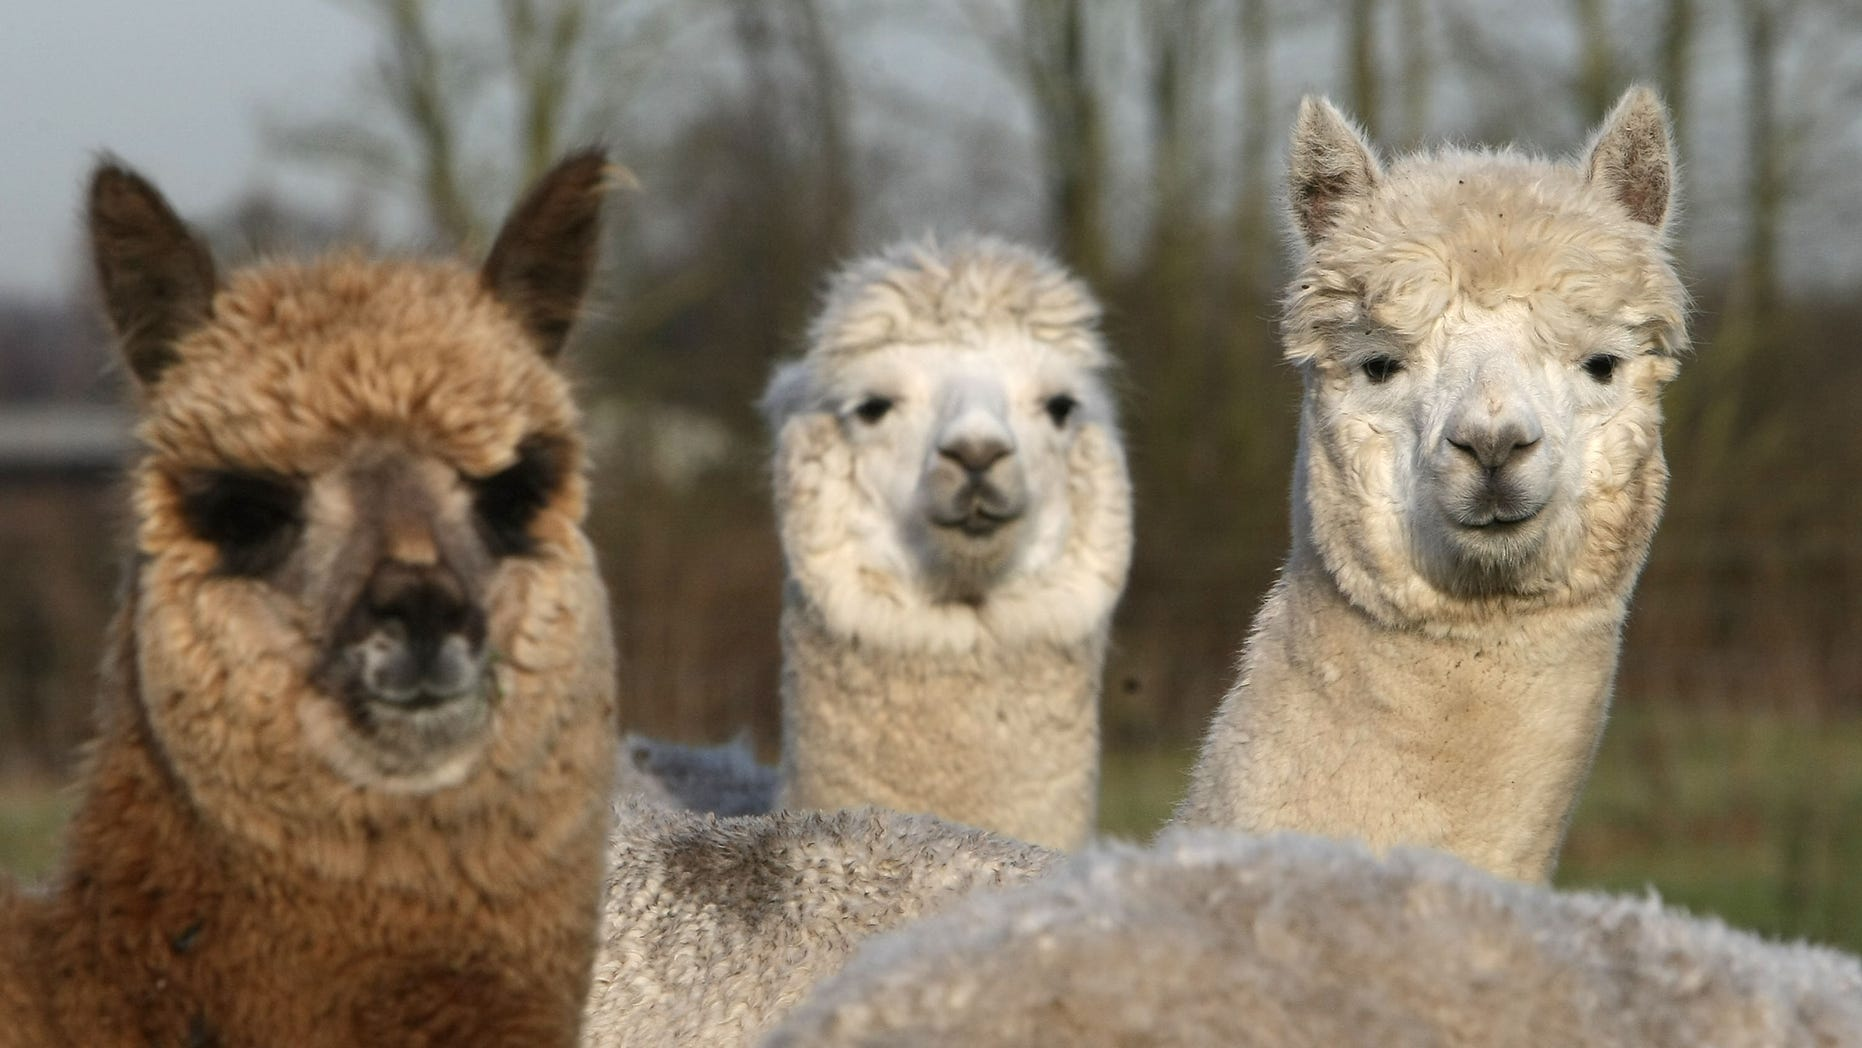 KNUTSFORD, UNITED KINGDOM - DECEMBER 13:  Alpacas graze on a field owned by farmer Khanikhah Guy at her country small holding on December 12, 2007, near the village of Pickmere, Knutsford, England. Alpacas are part of the camelids family and originate from the Andes. They are much sought after for their wool and coats which make high quality clothes and garments. Khanikhah's products and animals have become popular with the affluent and celebrity set of Cheshire with Alpacas becoming the latest new designer pet and costing up to GBP 5000. Socks made from the wool are her top selling Christmas present from her Artemis Alpacas Farm Shop. Shearing of the animals wool is done annually by a skilled shearer who flies to the UK from New Zealand. None of her animals are slaughtered for their fleeces and are only used after a natural death.  (Photo by Christopher Furlong/Getty Images)